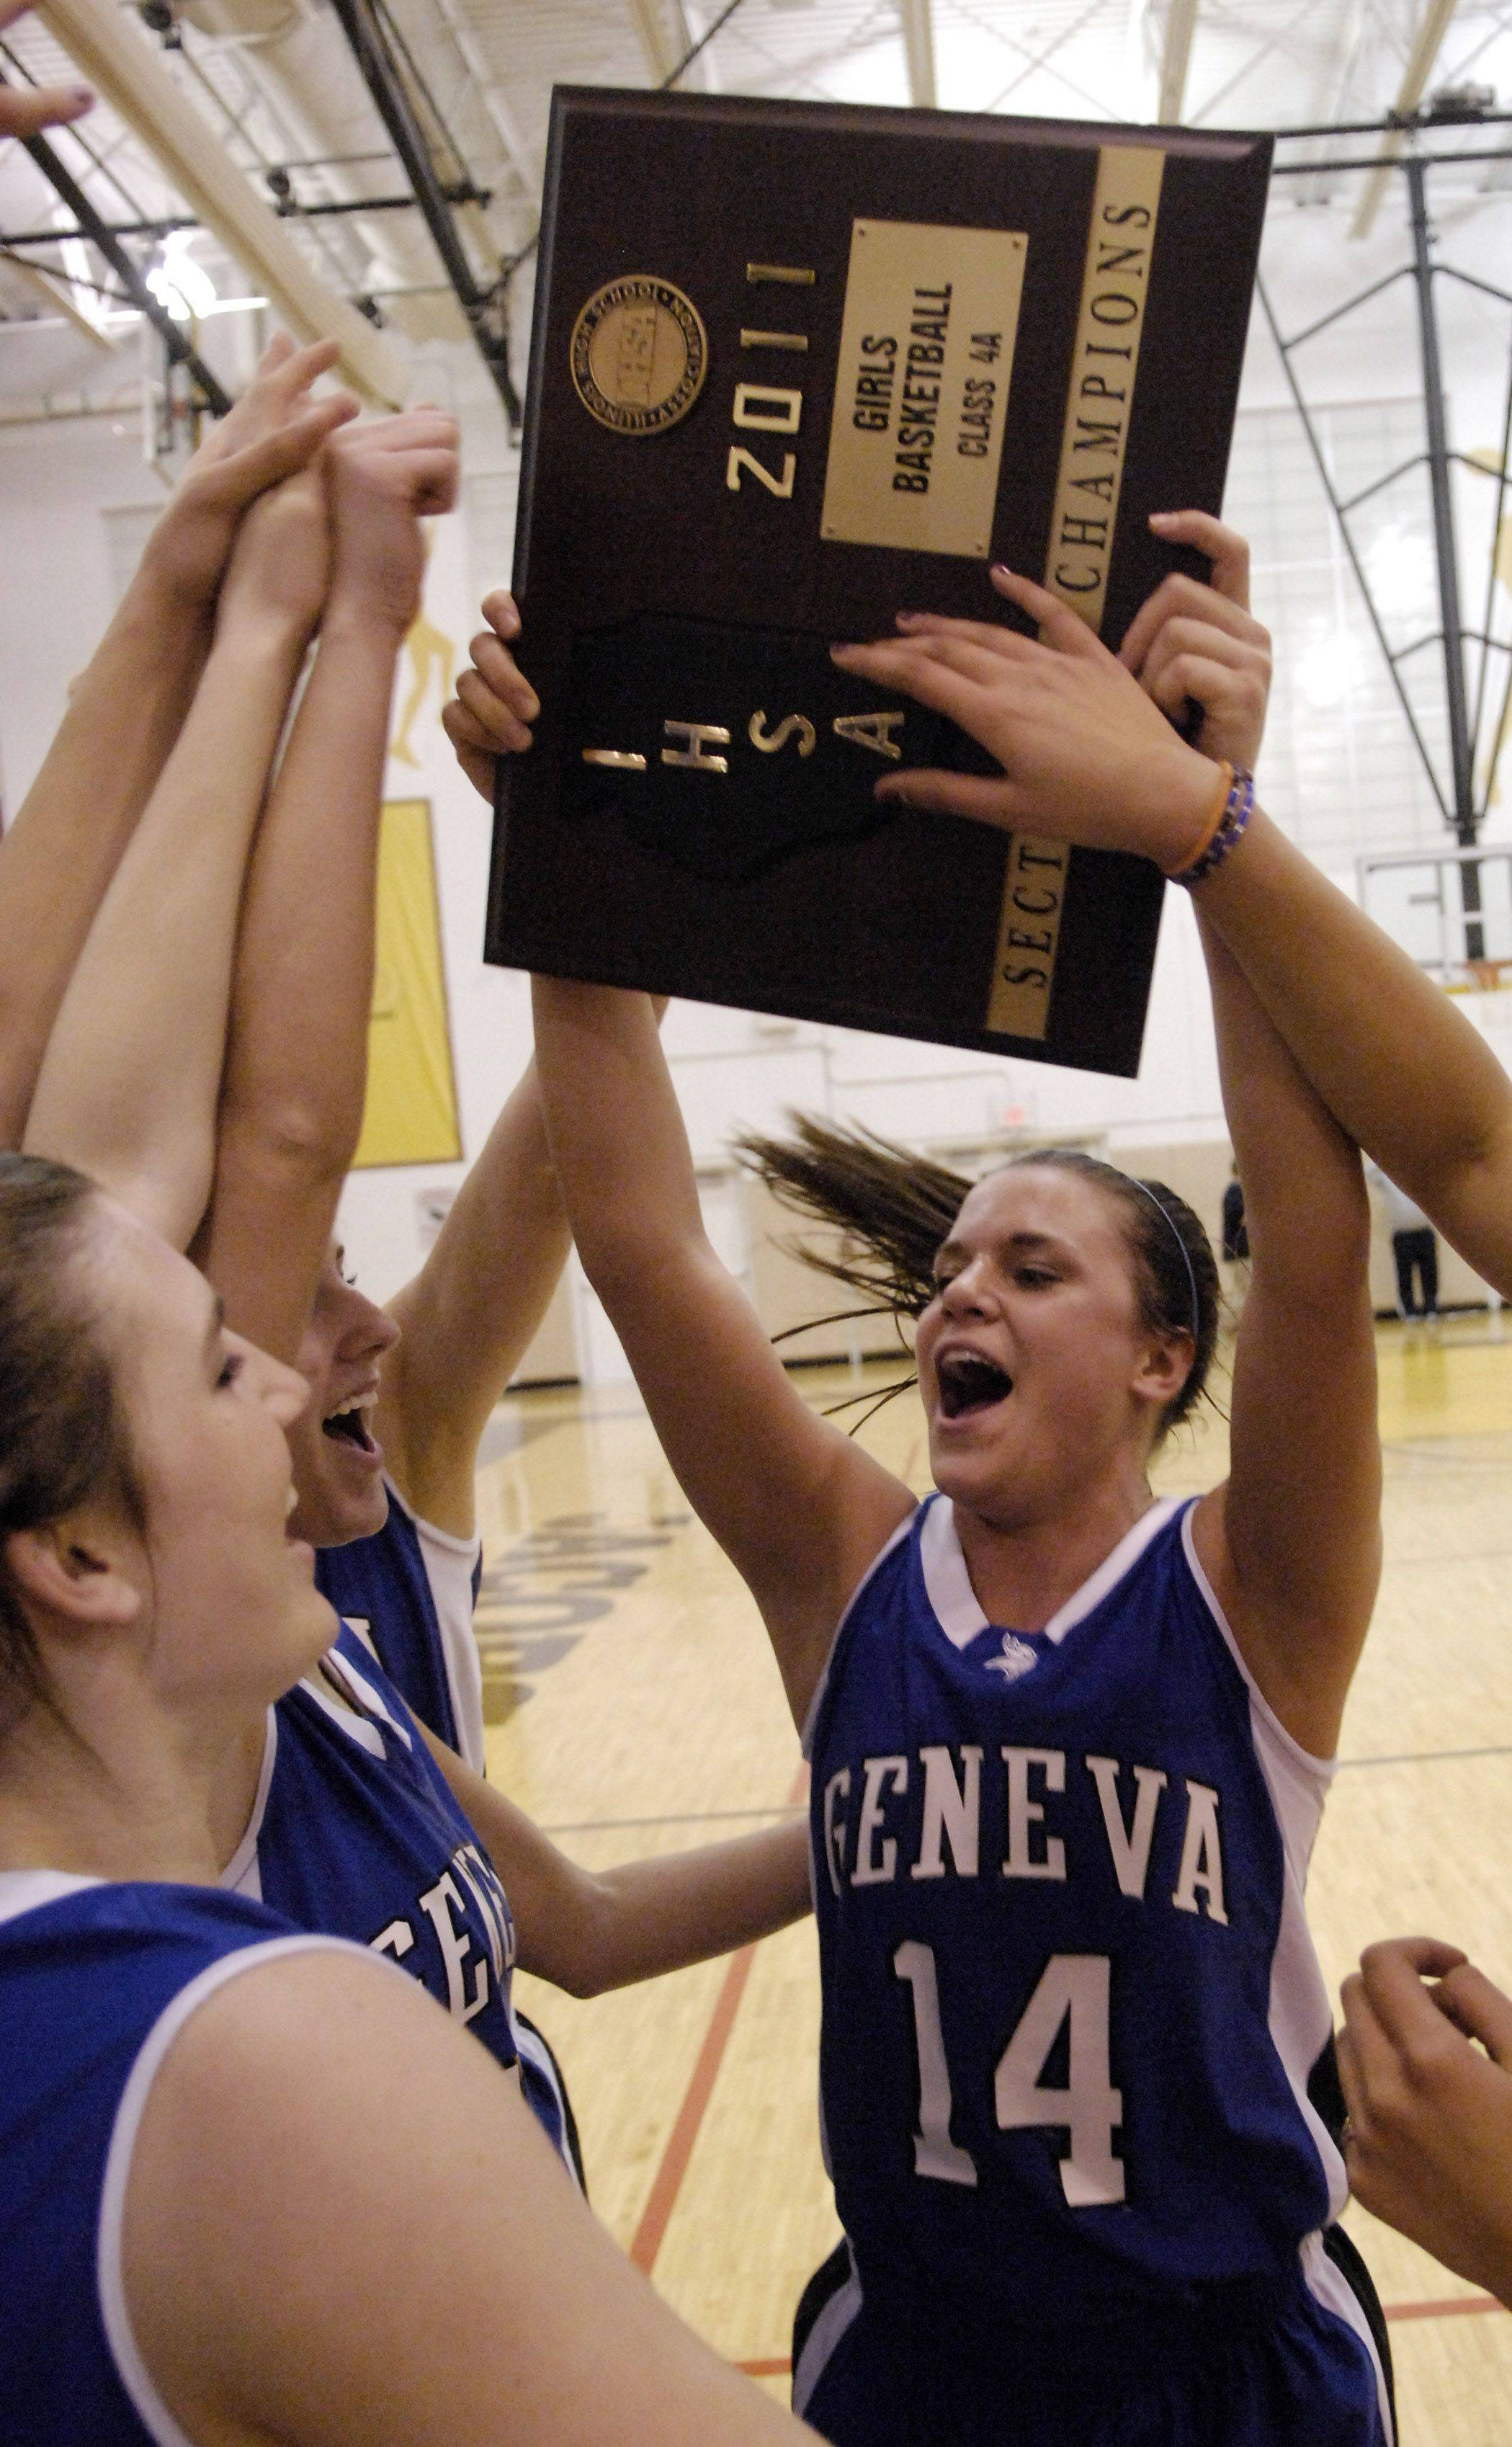 Geneva's Kat Yelle hoists up the sectional championship plaque following their win over Cary-Grove .